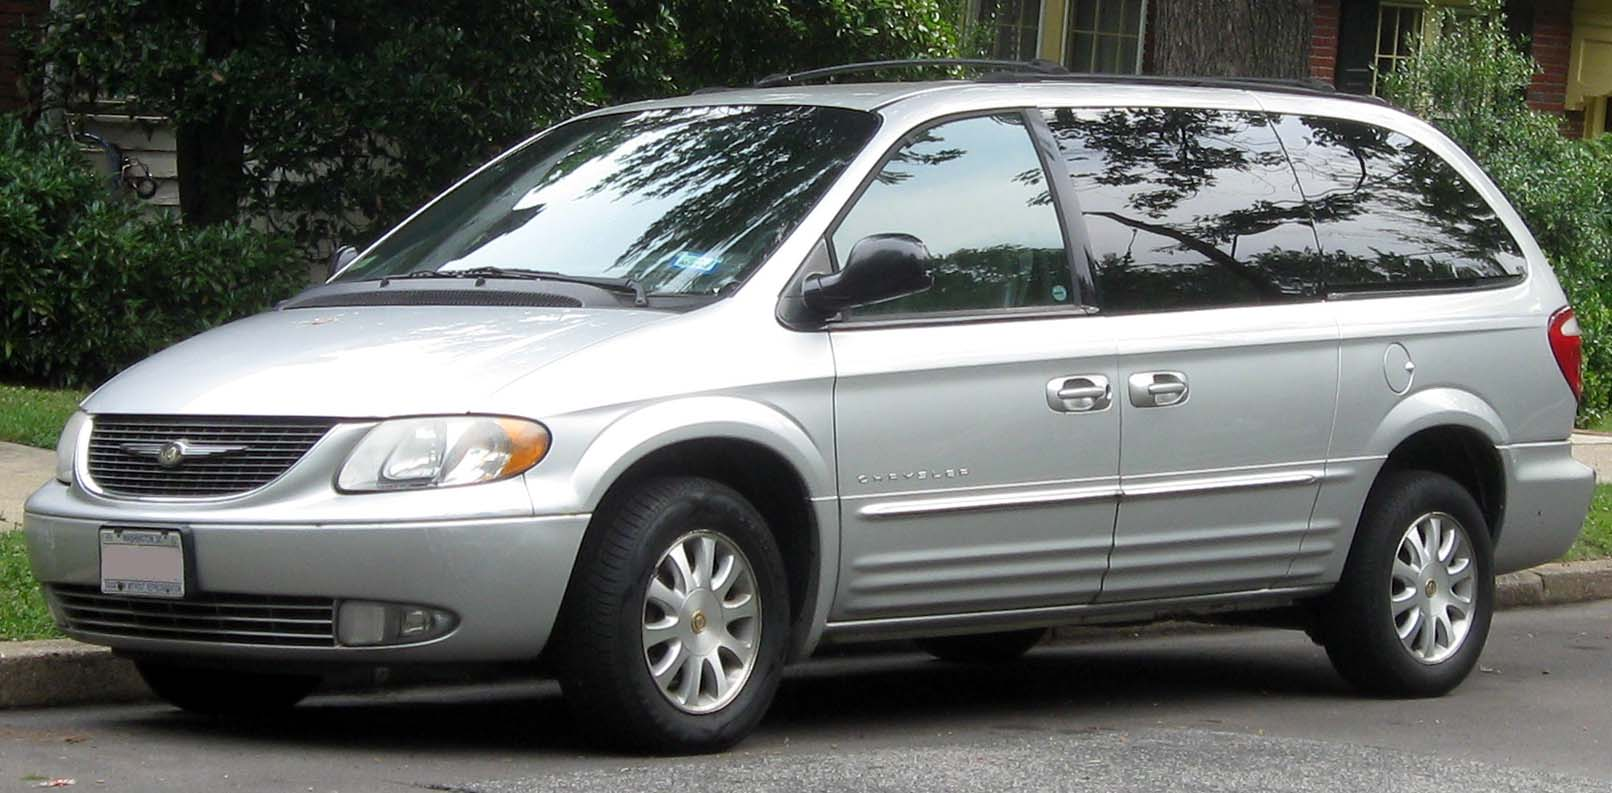 file 2001 2004 chrysler town country 07 04 wikimedia. Cars Review. Best American Auto & Cars Review